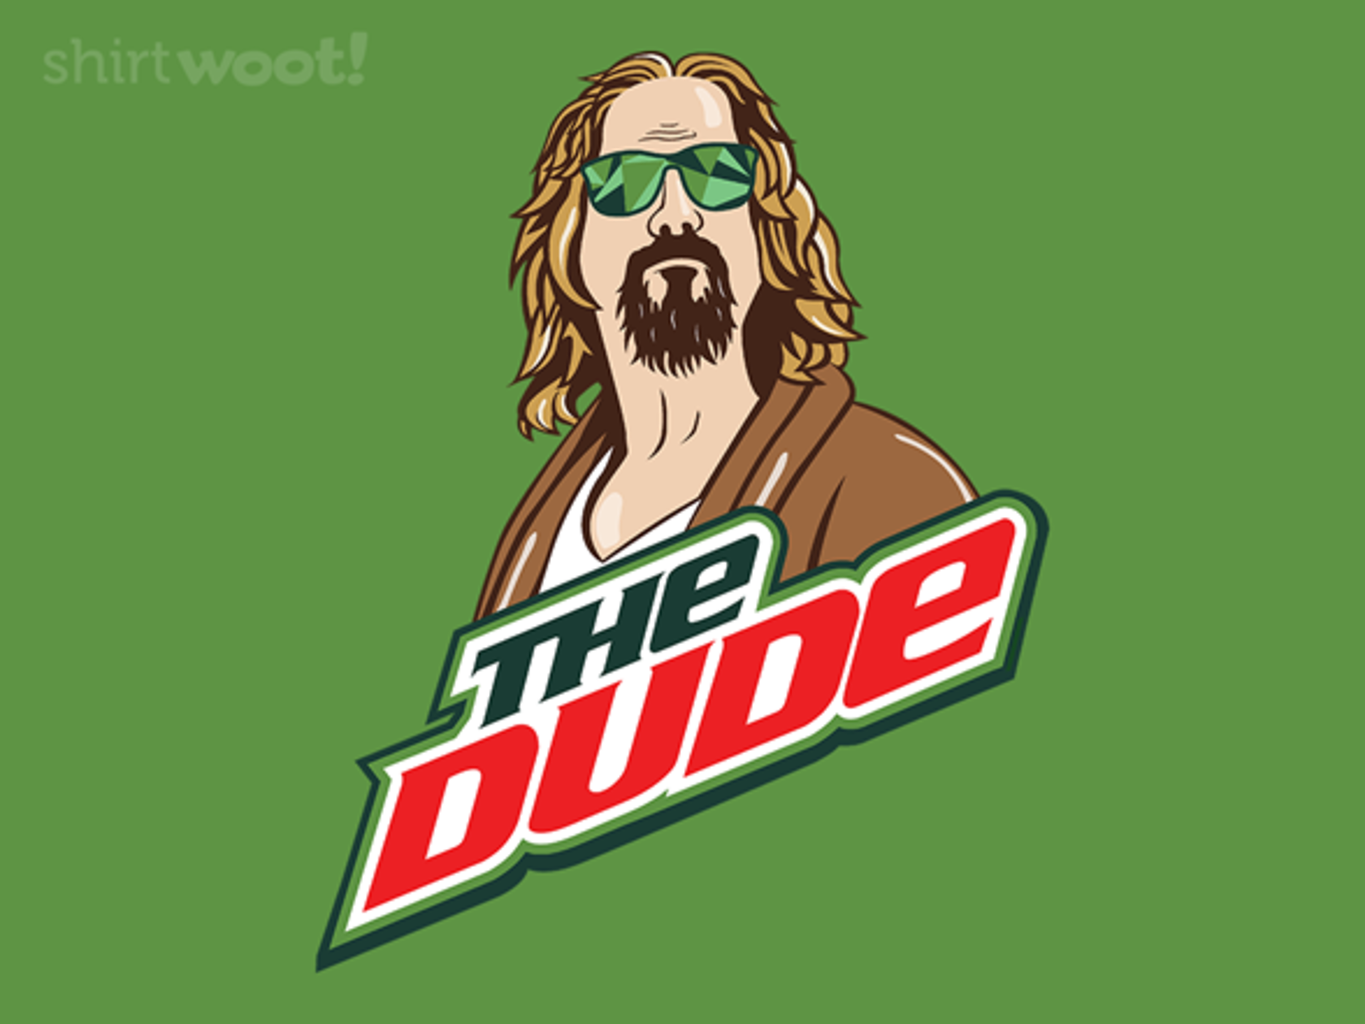 Woot!: The Dude